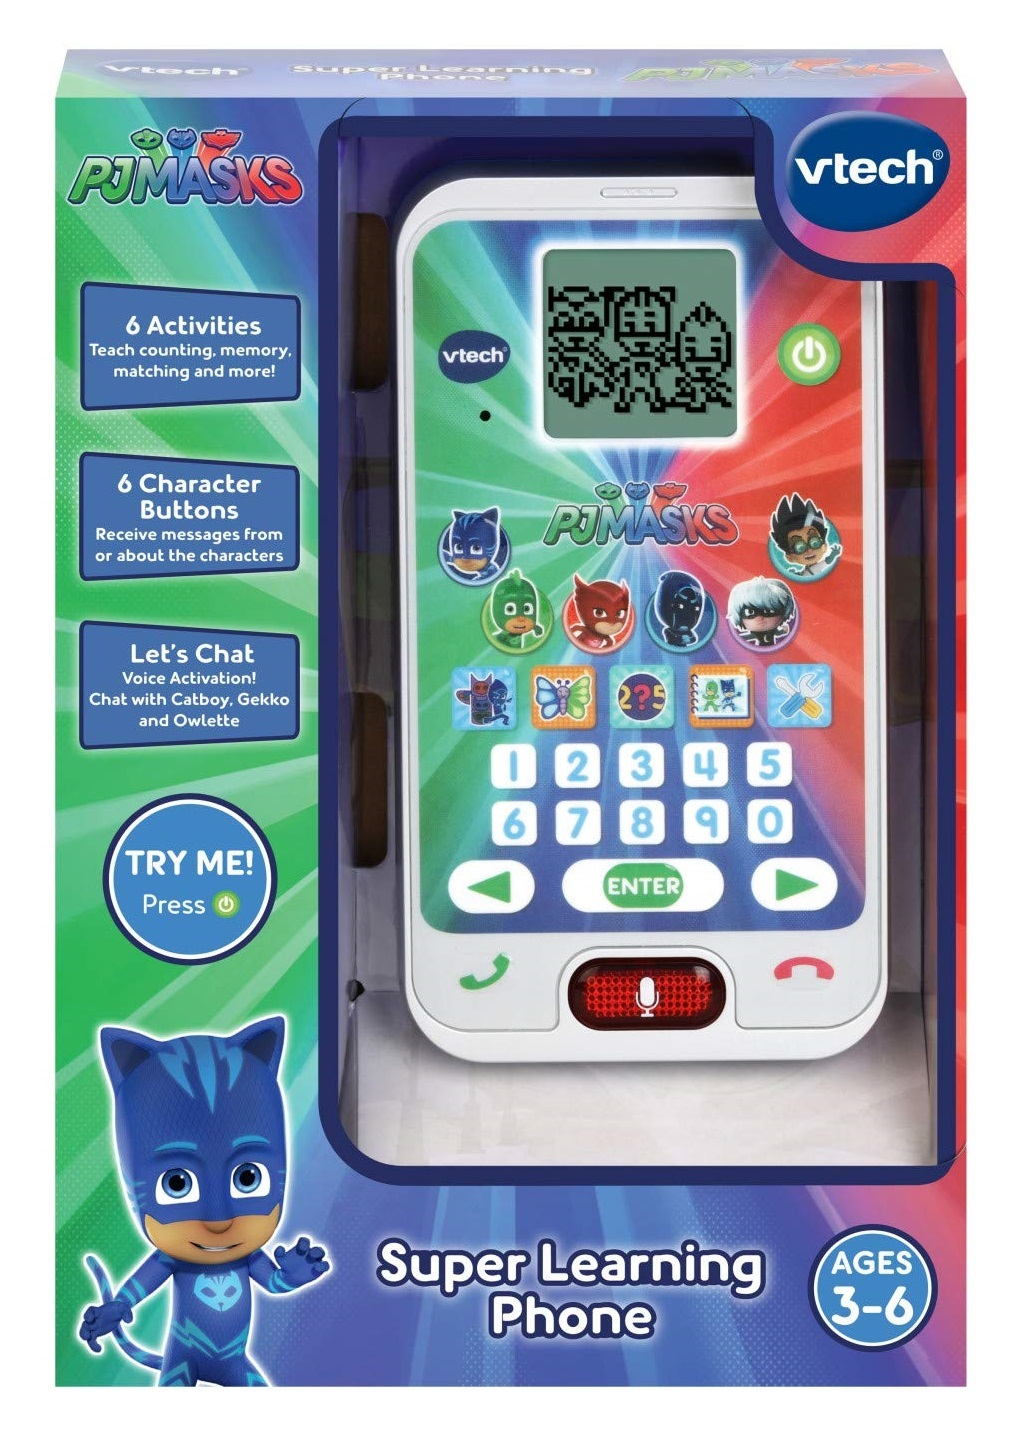 Vtech: PJ Masks - Super Learning Phone image